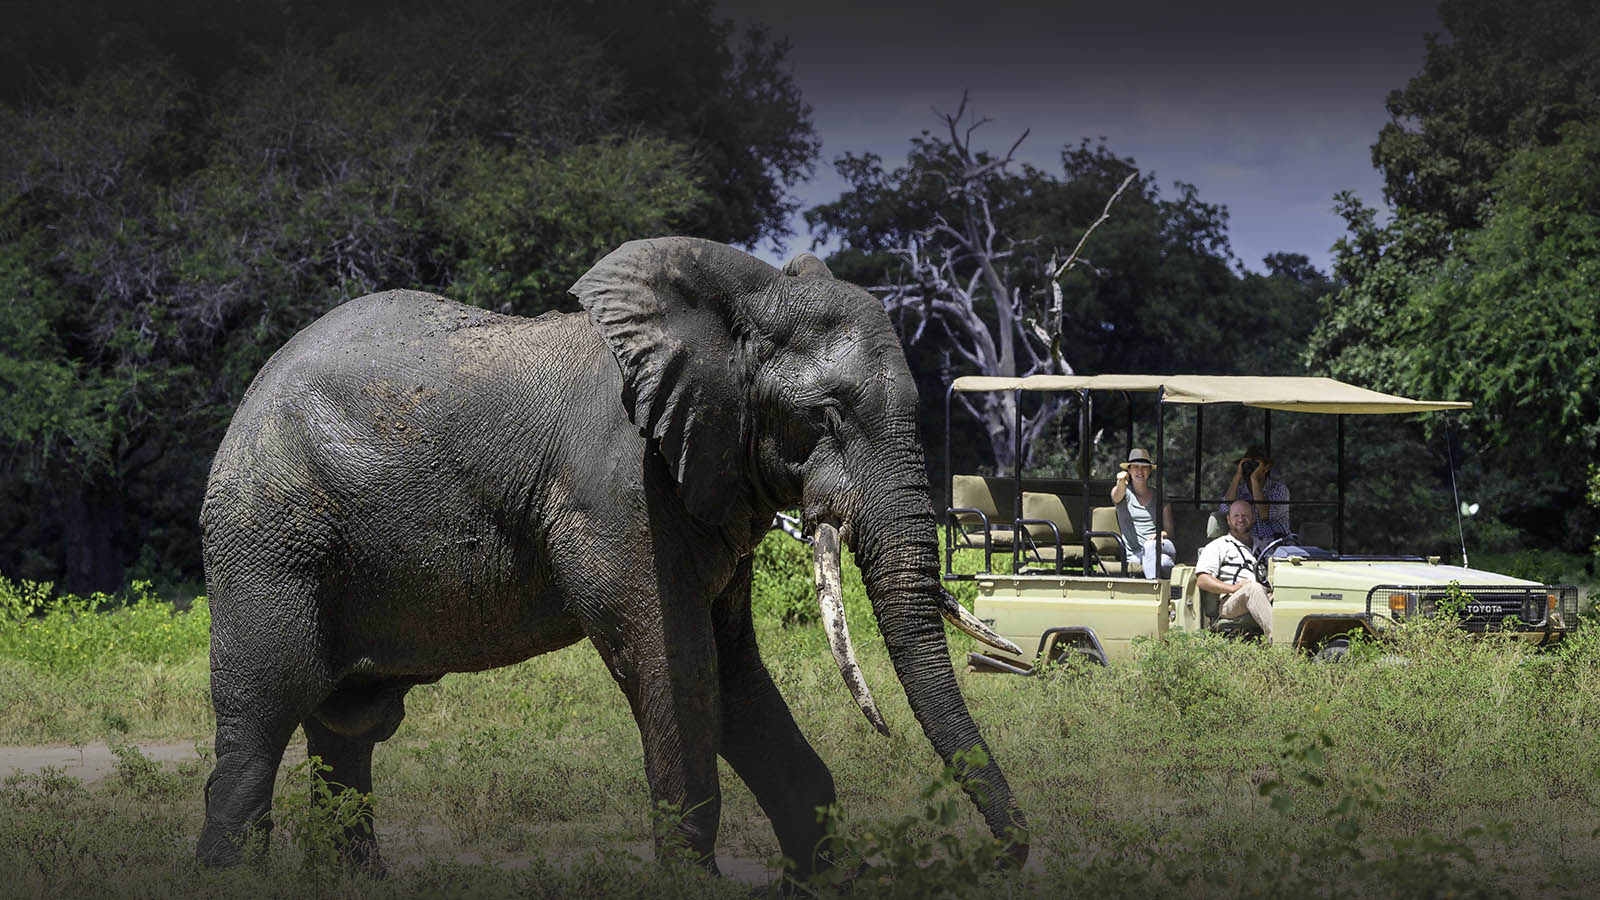 johns camp mana-pools-zimbabwe-accommodation-safari-zambia-in-style-elephant-game-drive